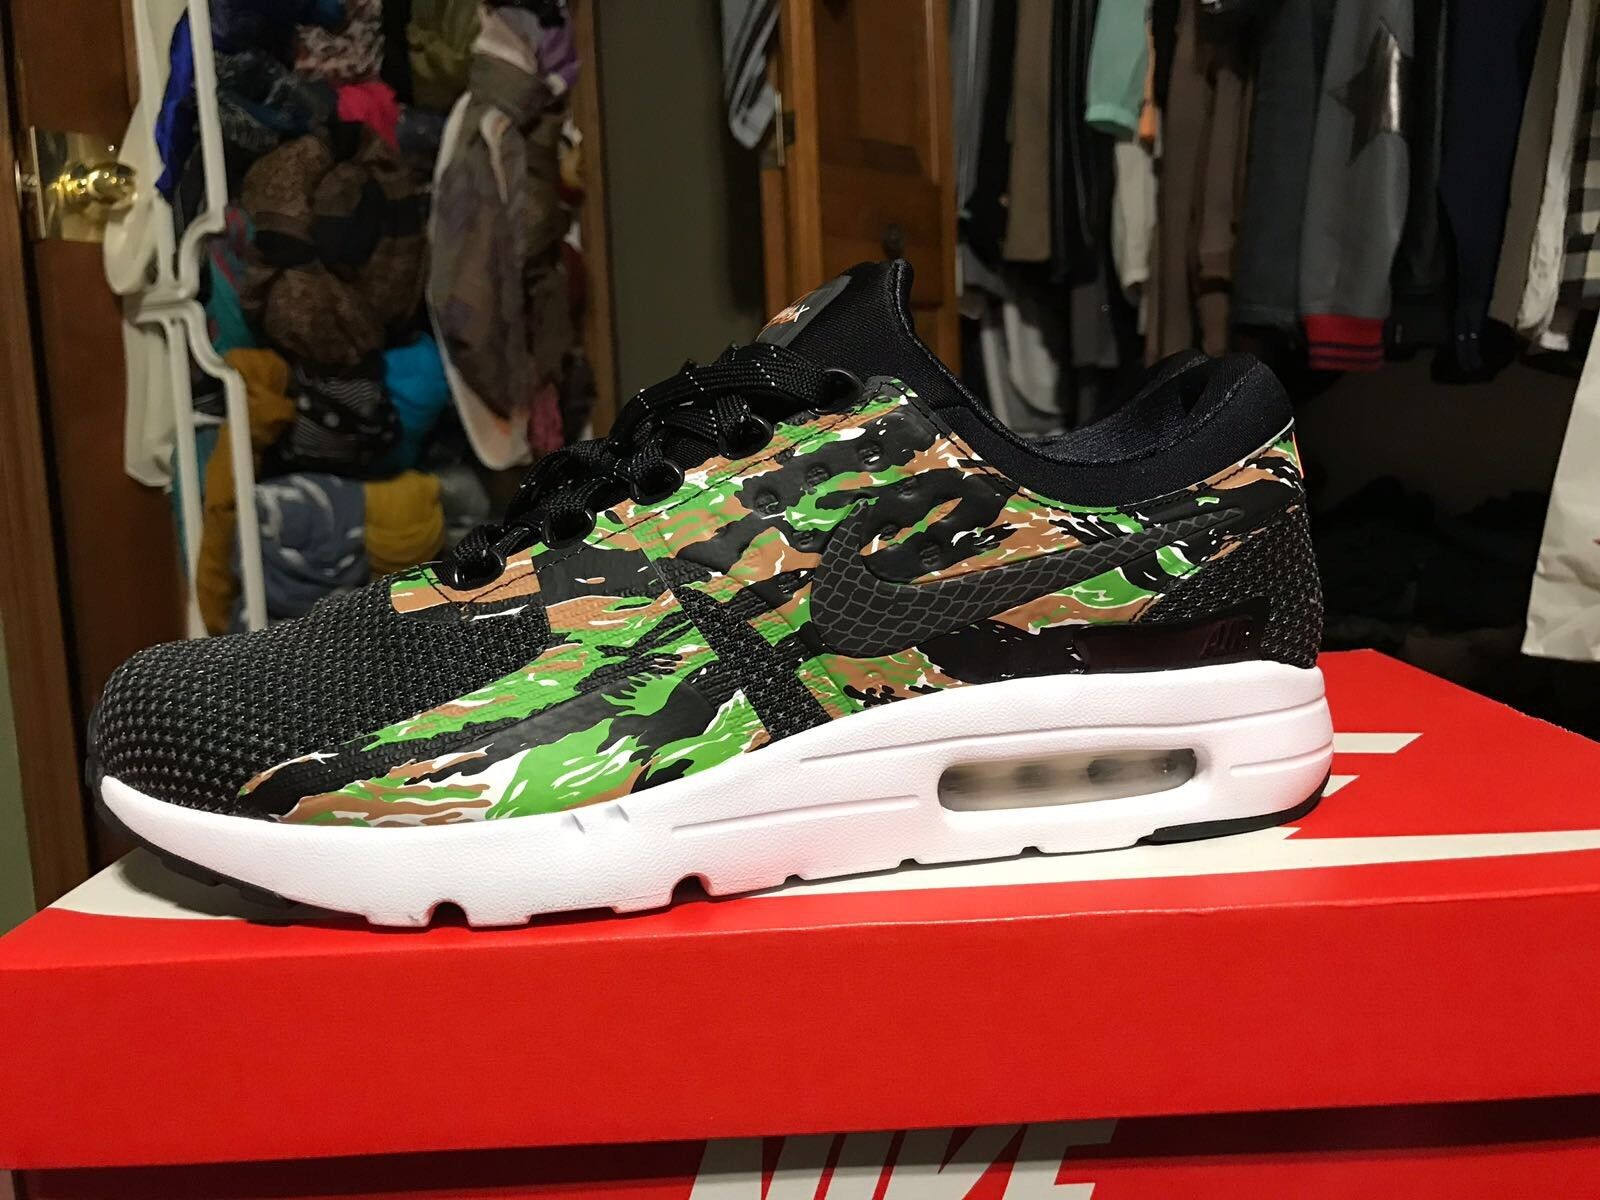 Nike Air Max Zero Jp Id Atmos Tiger Camo Day Japan Only QS 400 Pair AH1809 008